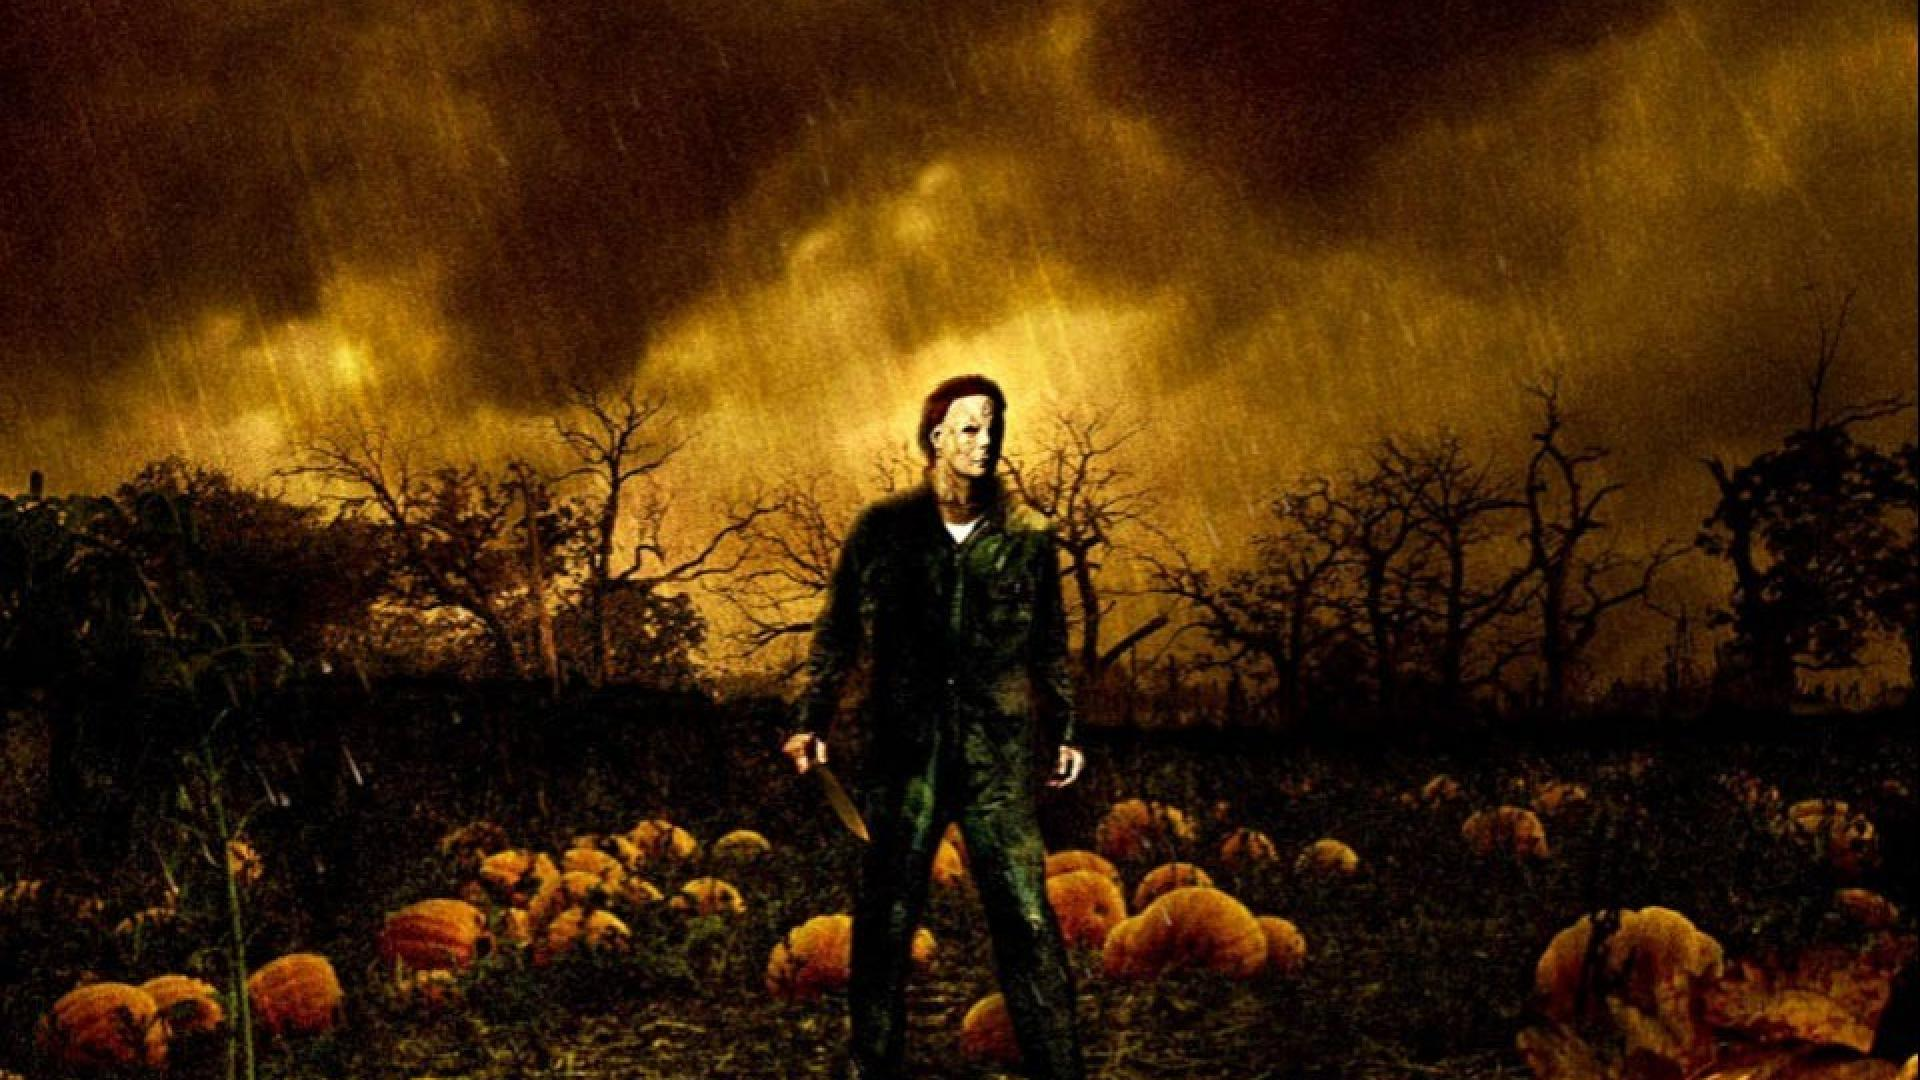 Hd Michael Myers Halloween Wallpaper Wallpapersafari